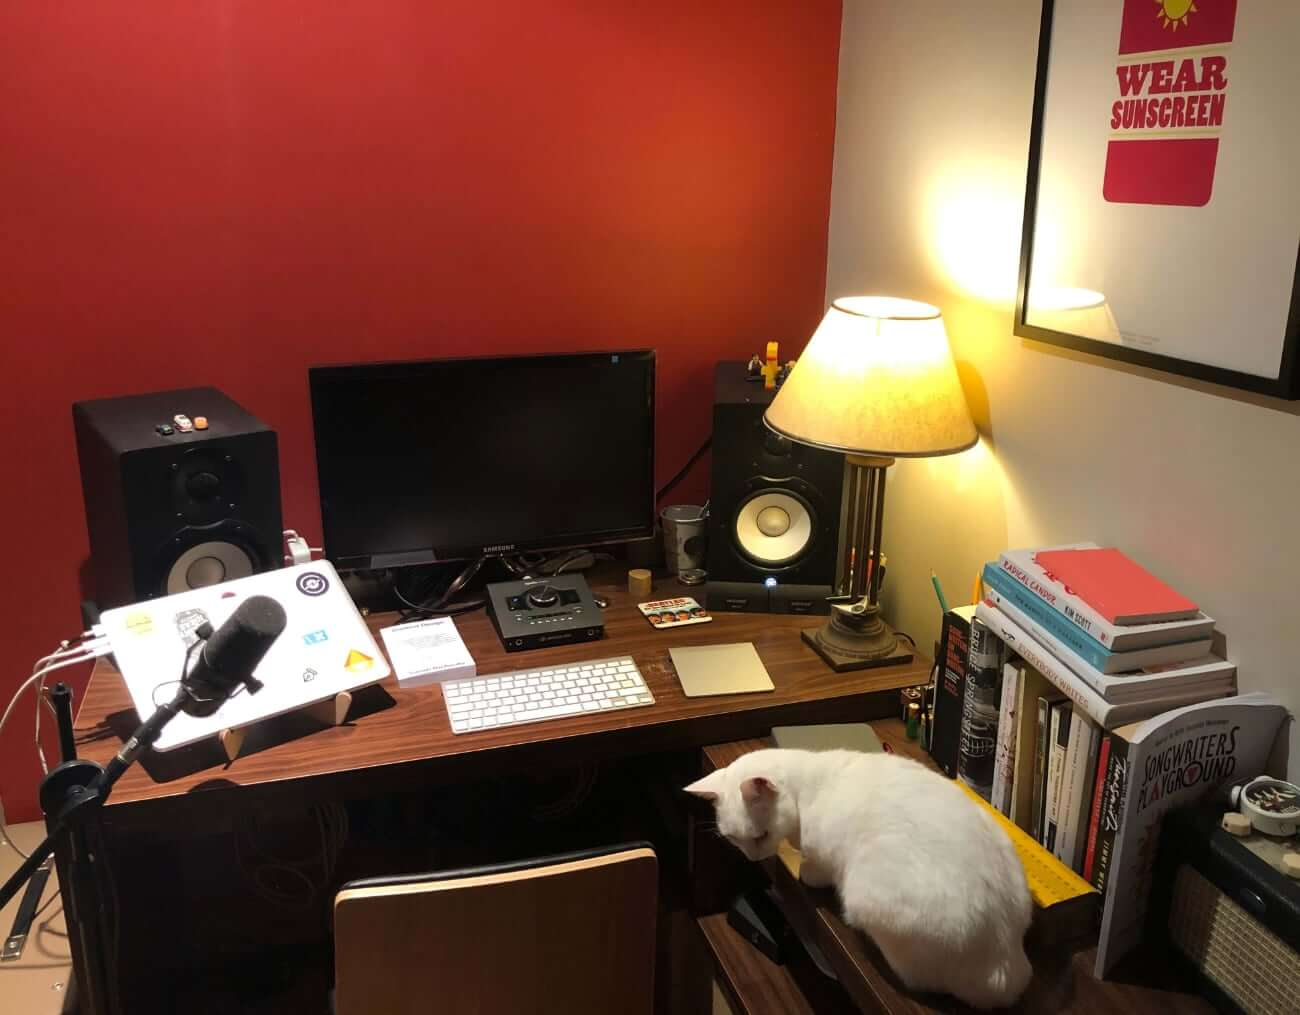 Image of Daniel's work from home setup, featuring Mollie the cat